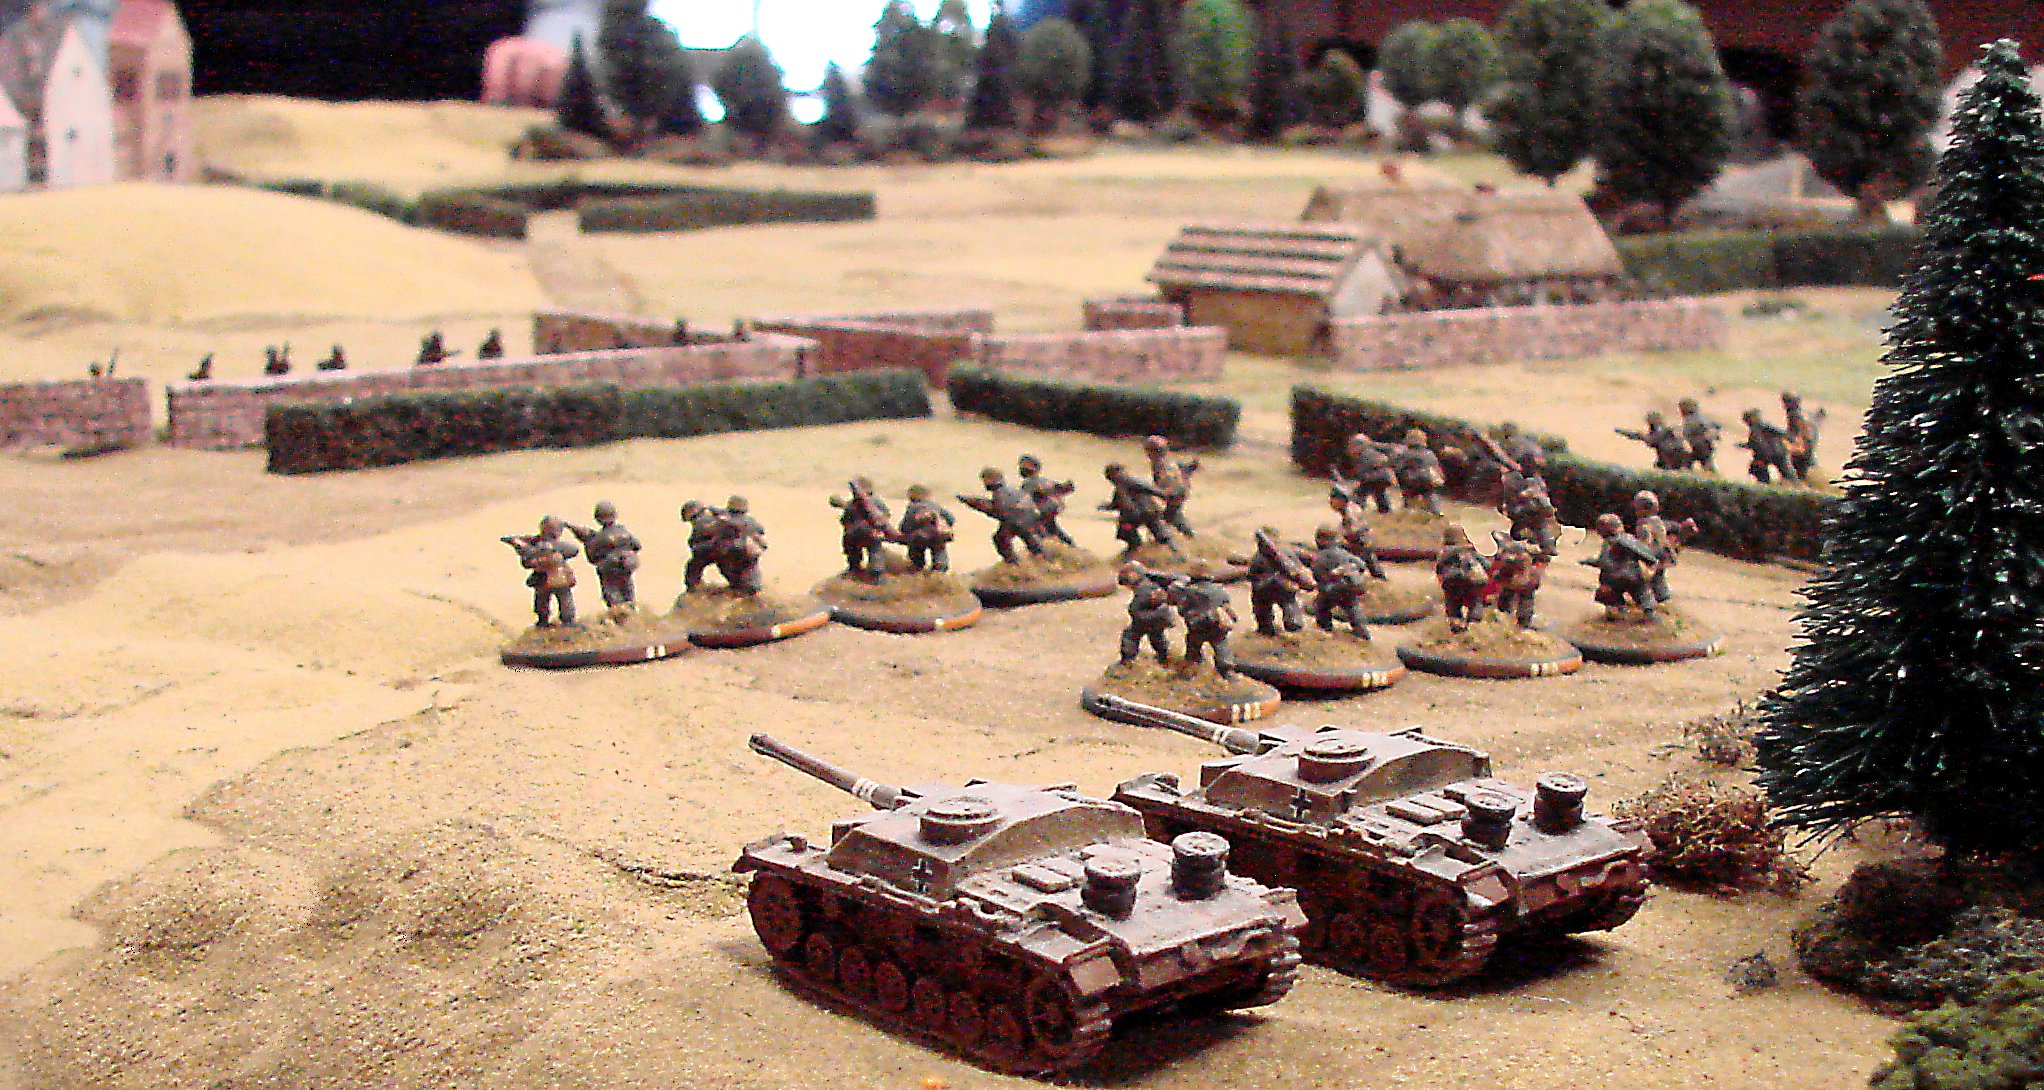 On the left flank, an advancing platoon is supported by a couple SturmGeschutzen.